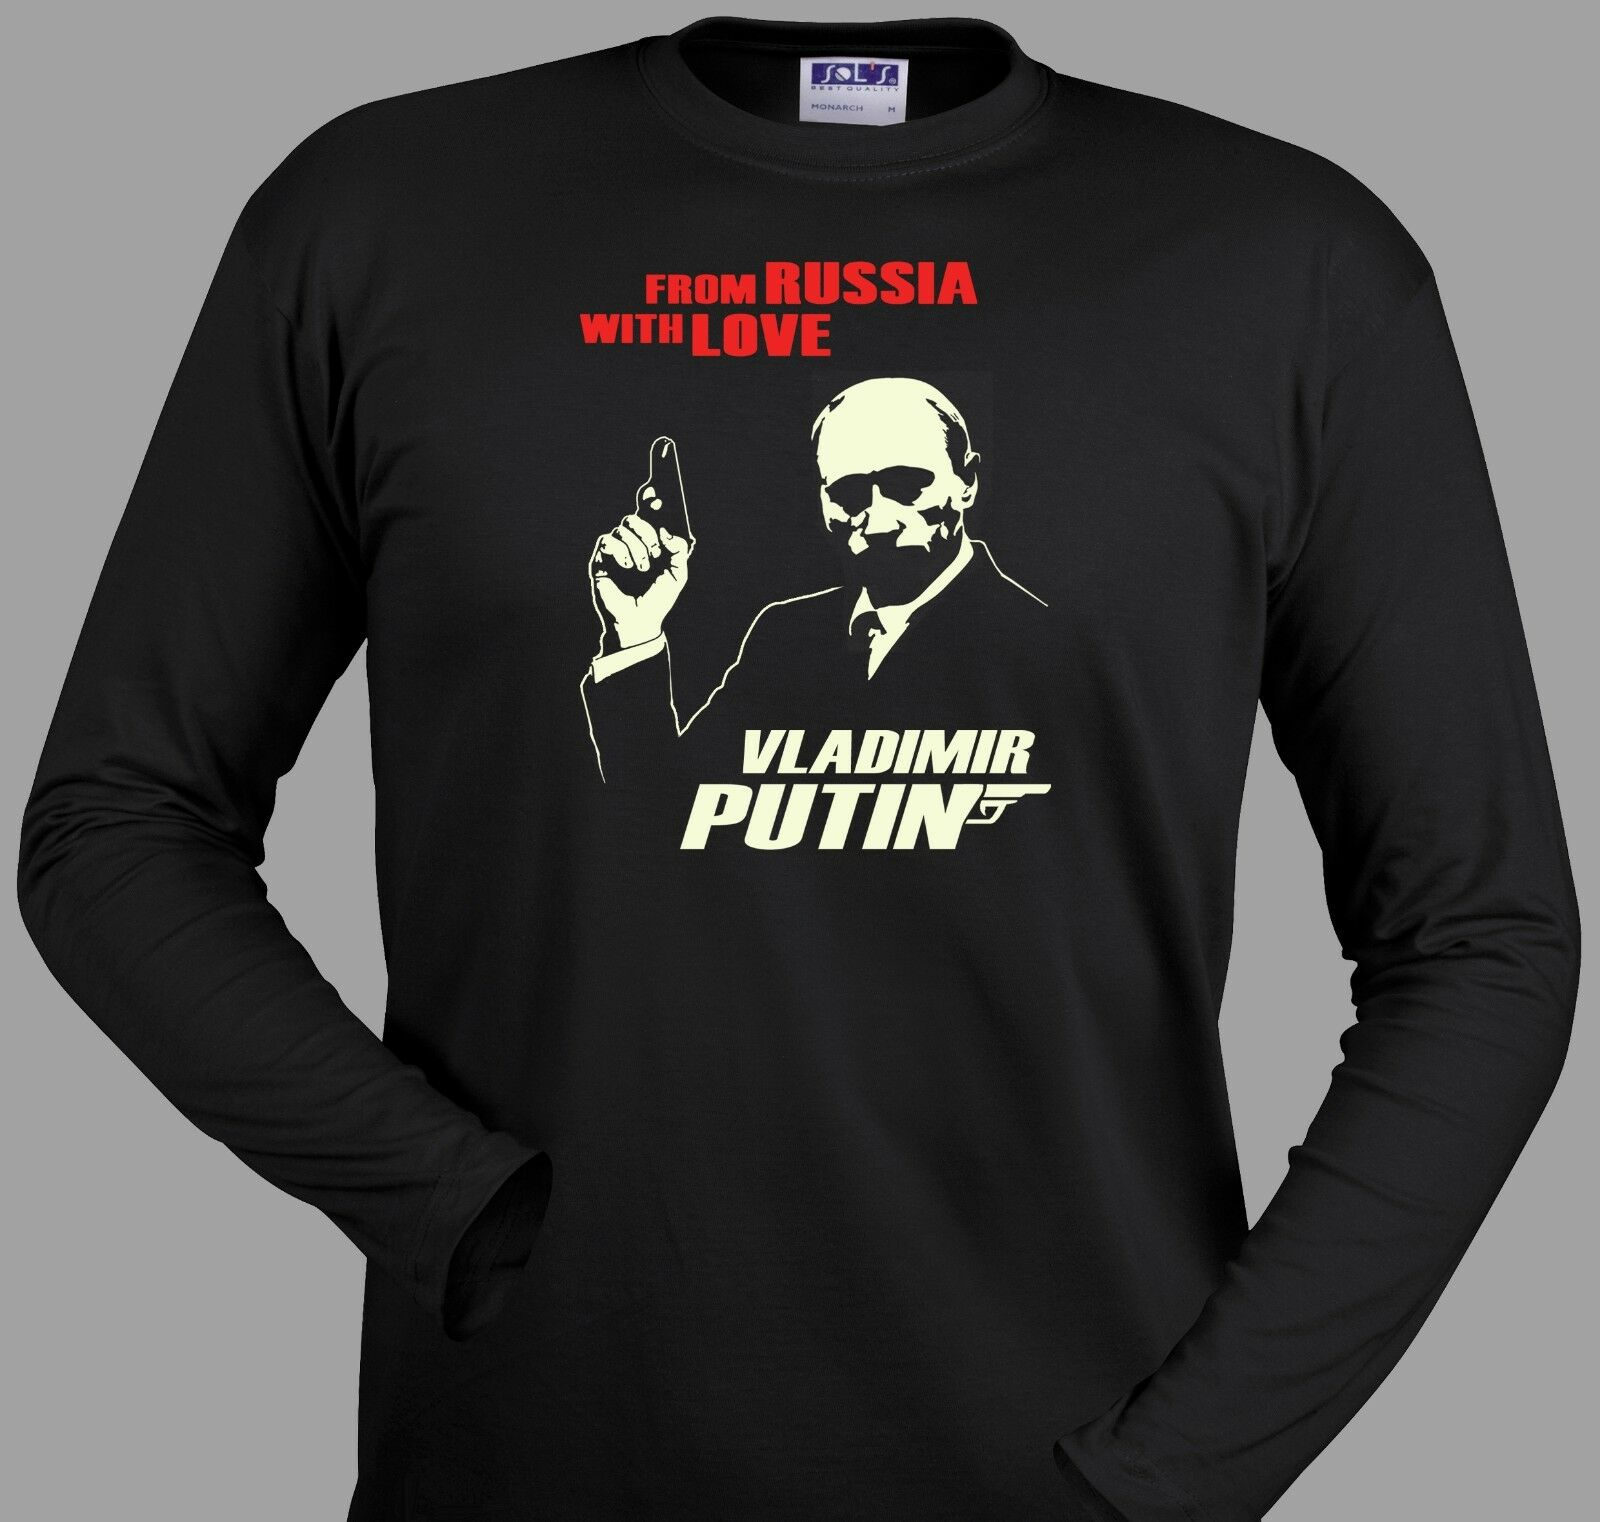 Putin T Shirt From Russia With Love Funny James Bond 007 Ussr Ebay